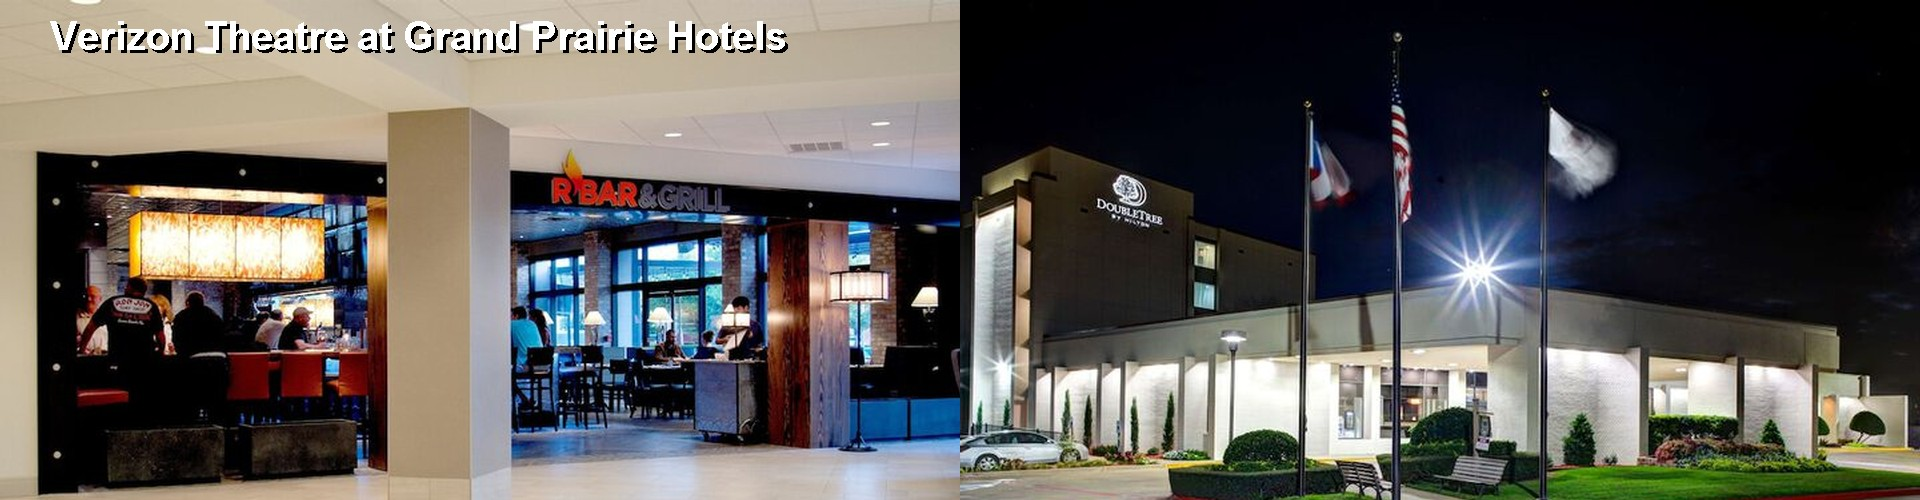 4 Best Hotels near Verizon Theatre at Grand Prairie